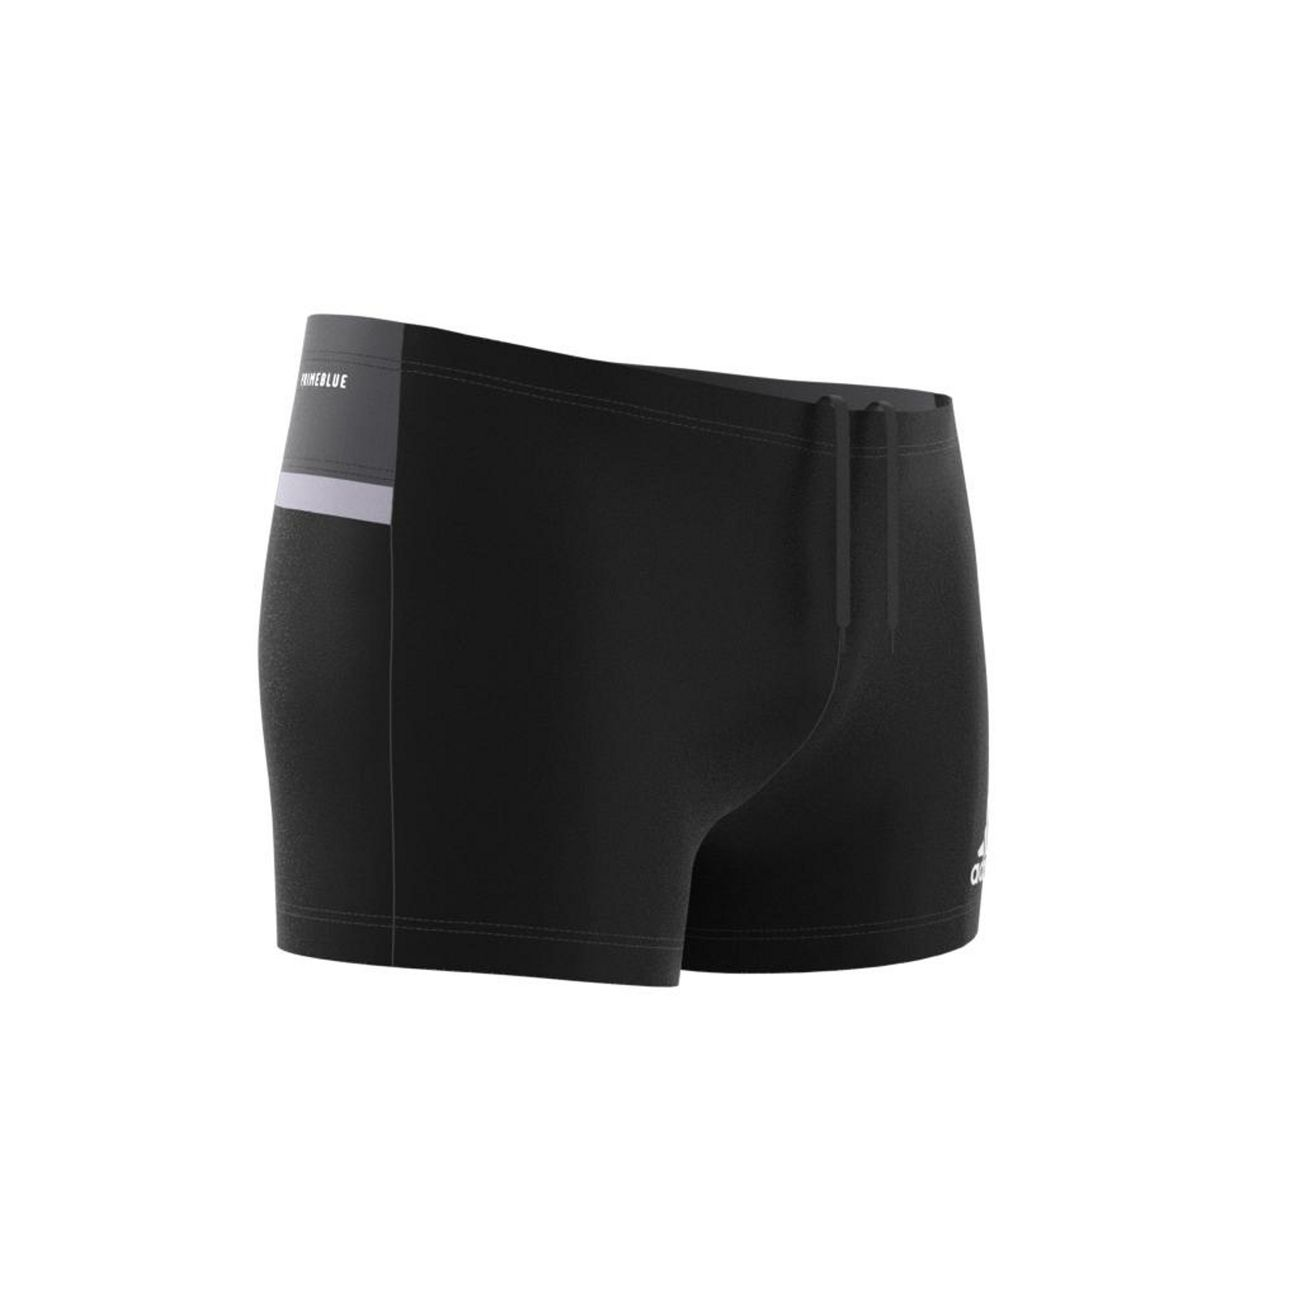 Natation homme ADIDAS Boxer adidas Fitness Taper